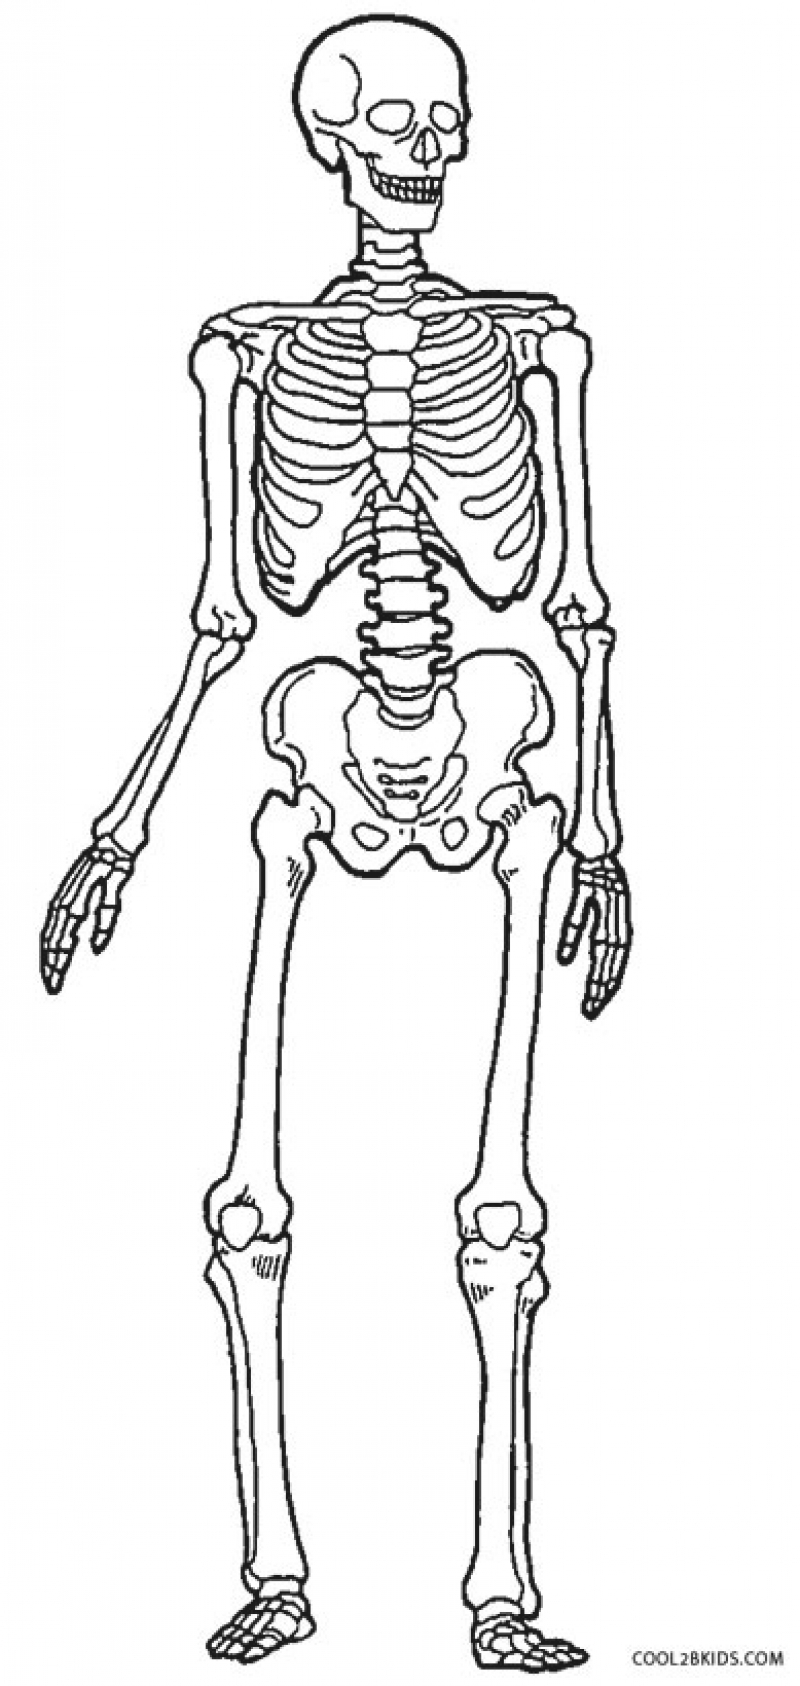 coloring picture of skeleton printable skeleton coloring pages for kids cool2bkids skeleton of picture coloring